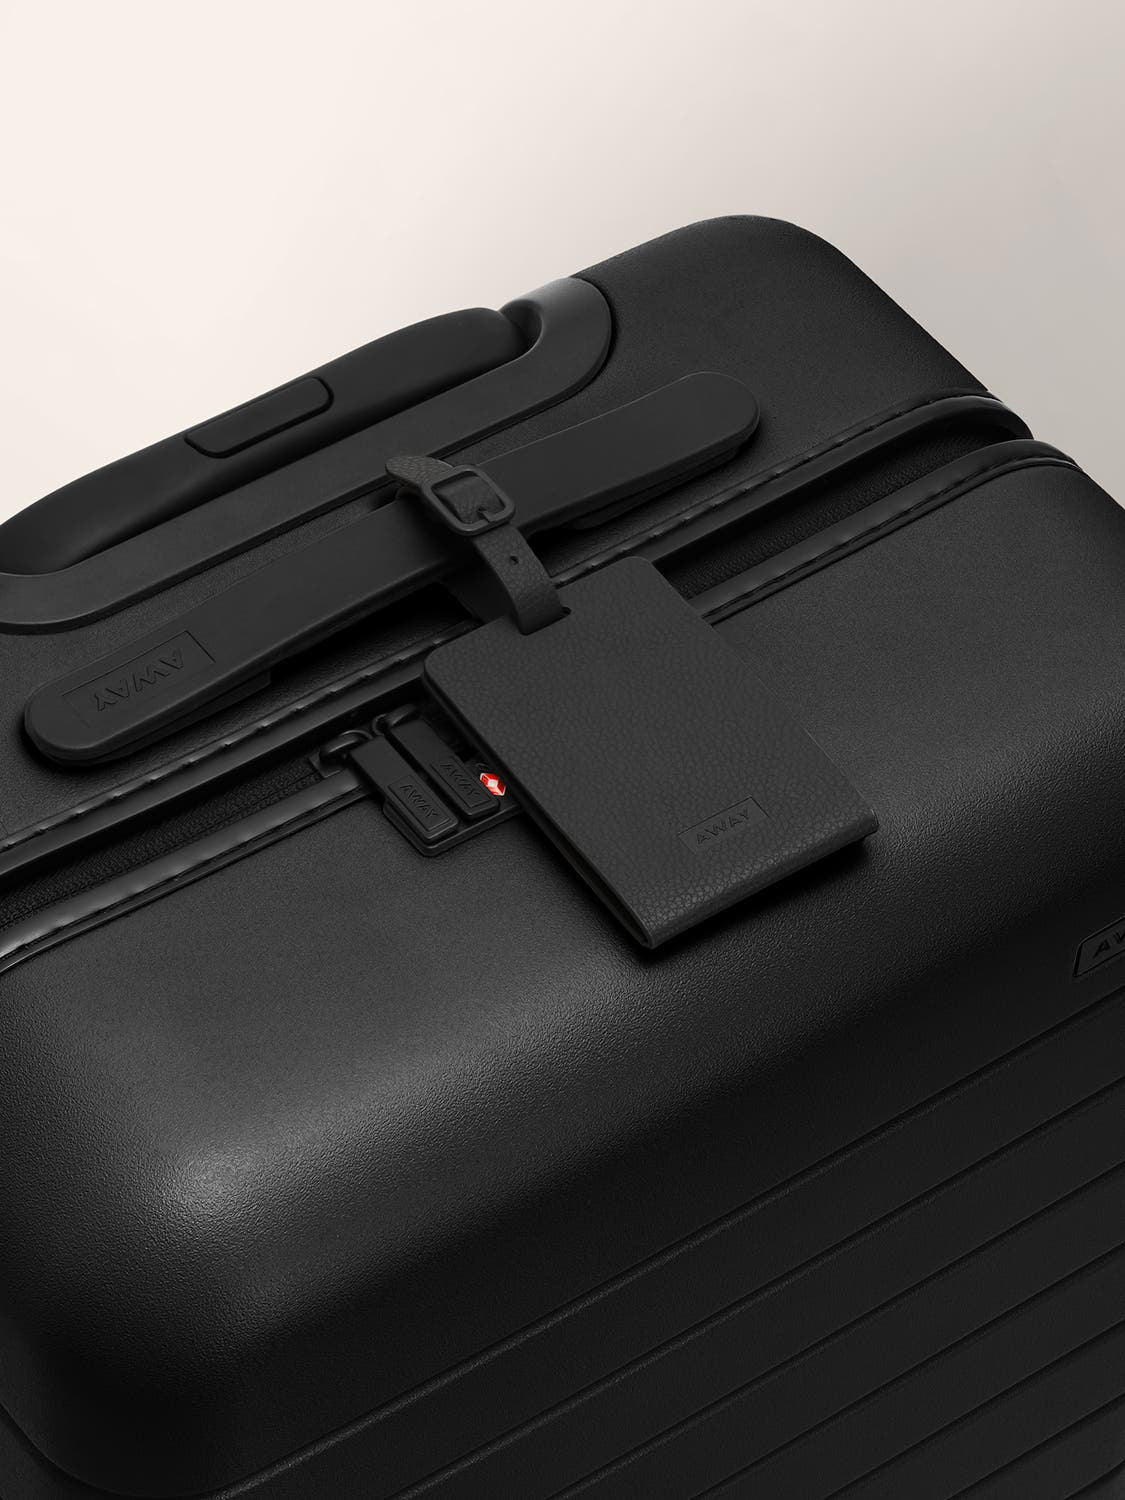 A black color luggage tag strapped to a black handle on a black suitcase.